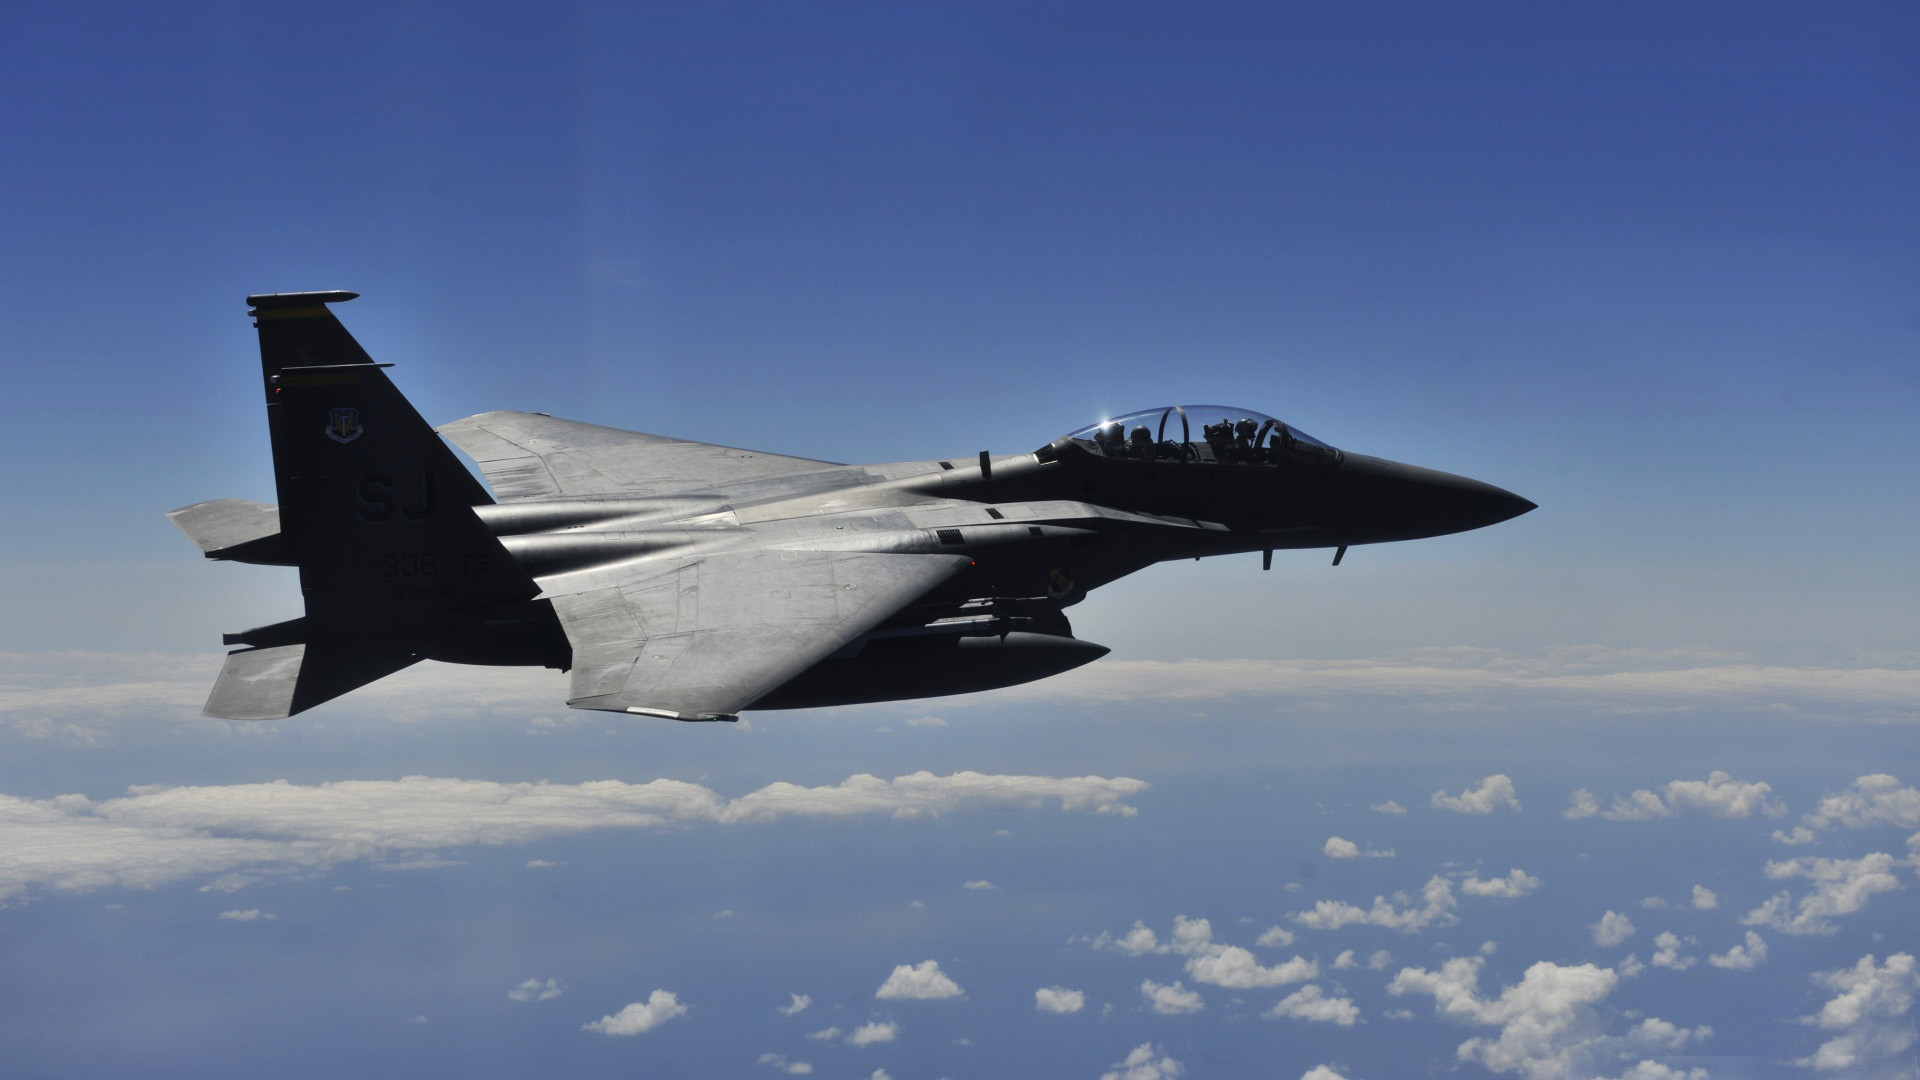 1920x1080 ... Download 4th Fighter Wing United States Air Force Wallpaper ...